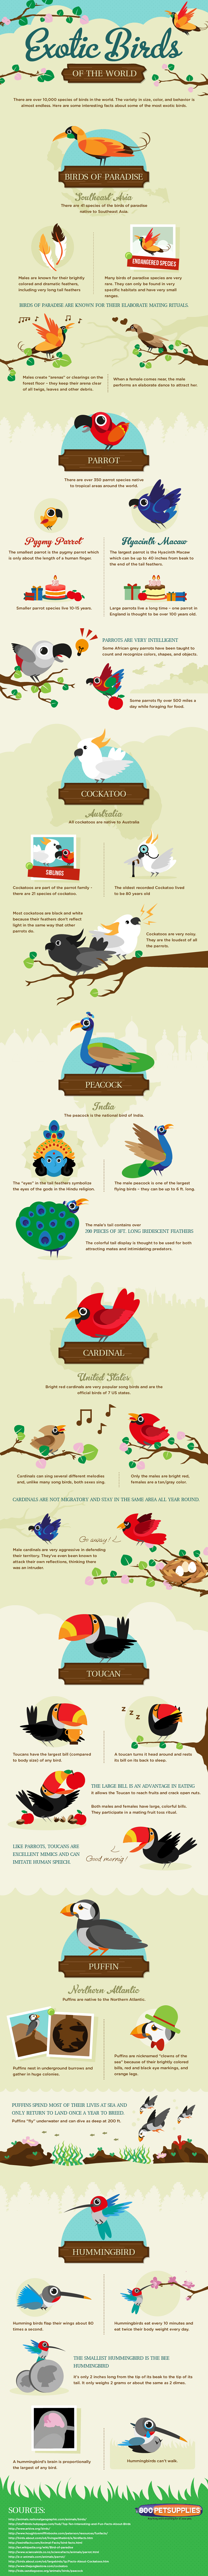 Exotic Birds of the World